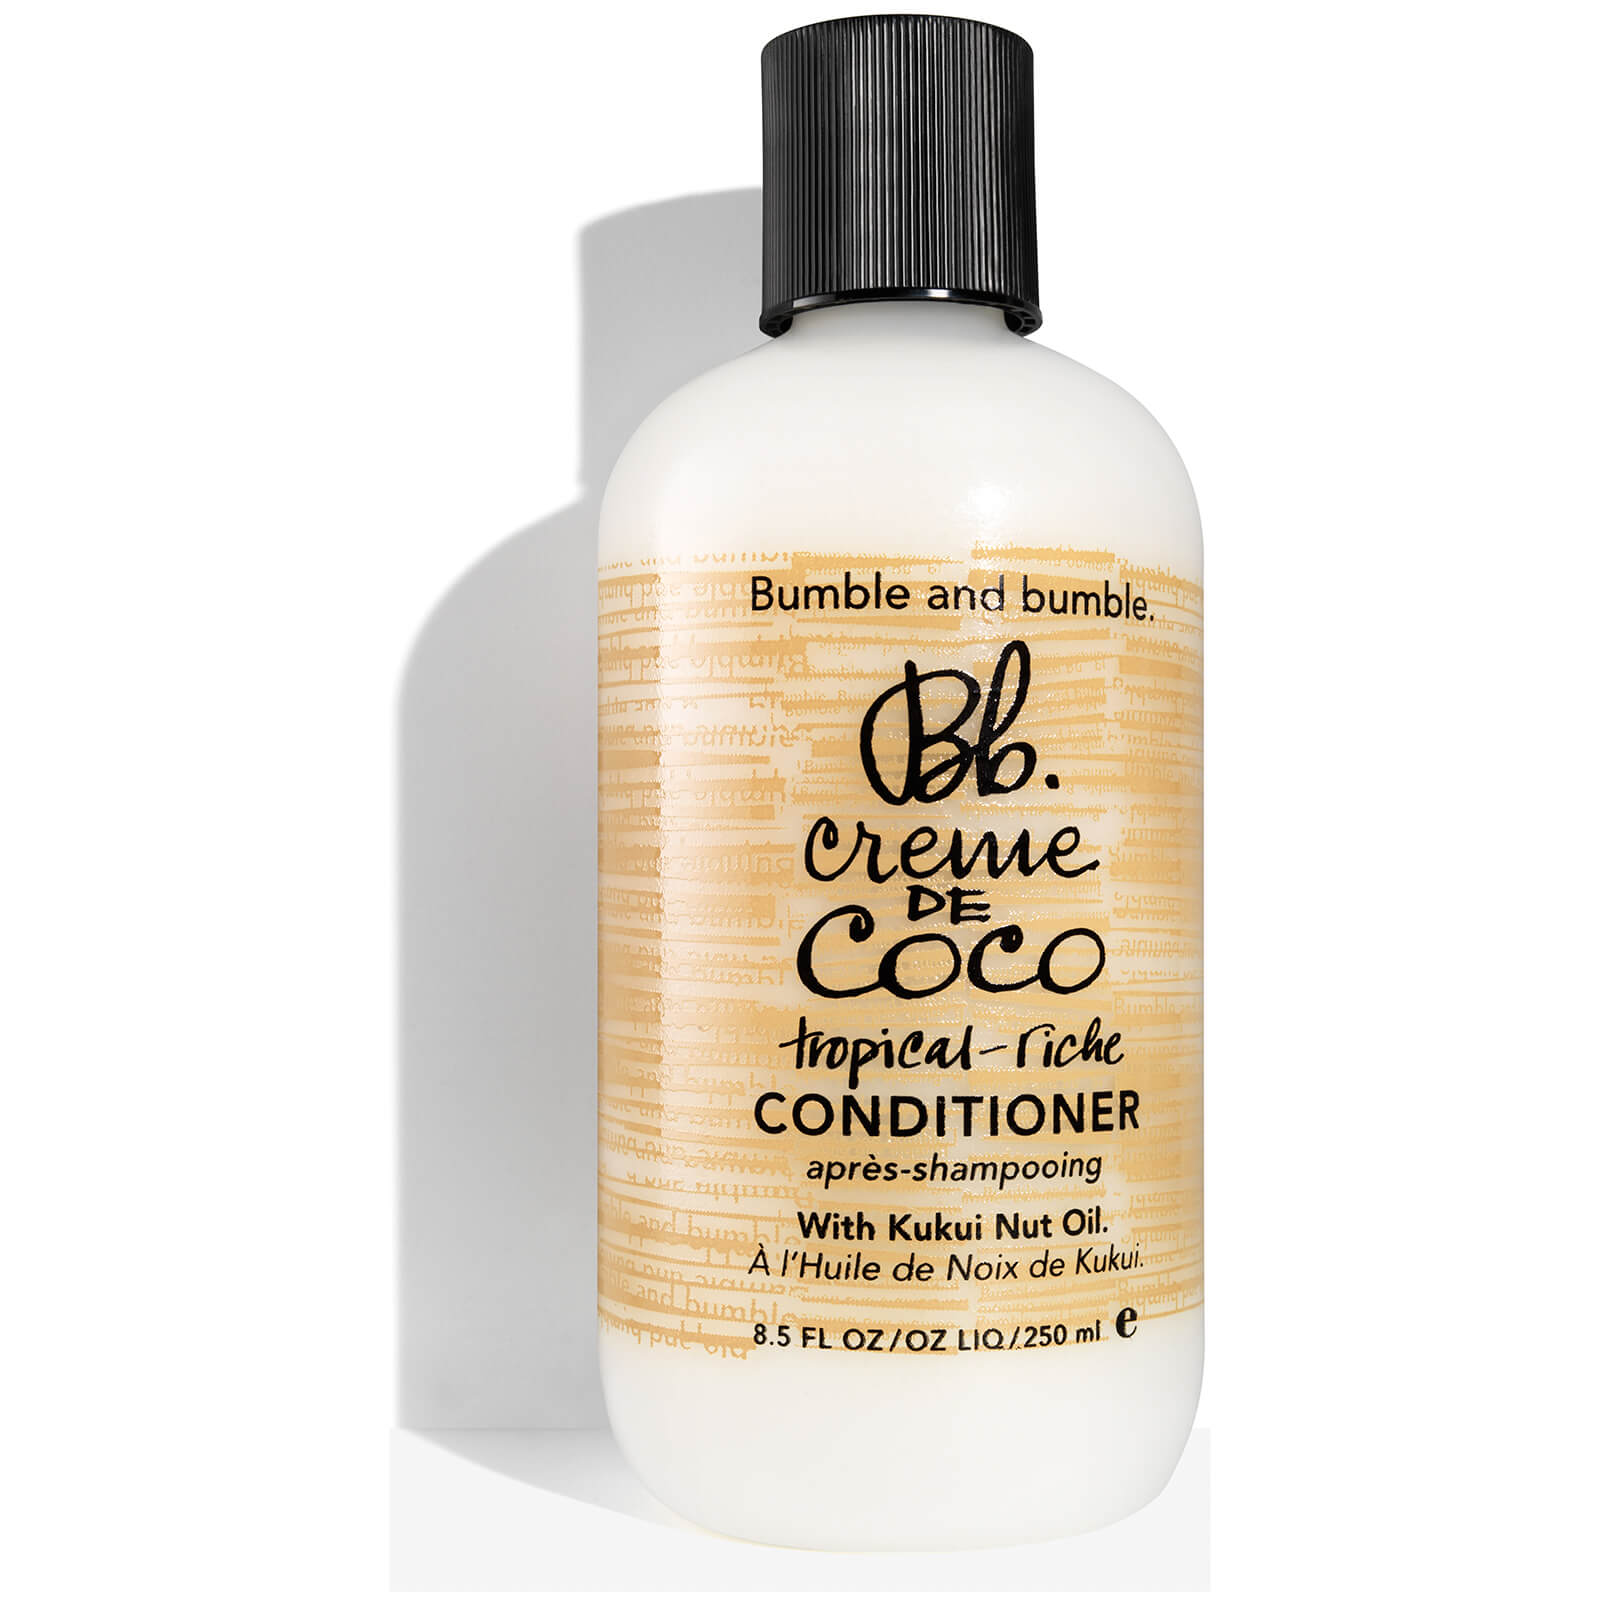 Bumble and bumble Crème de Coco Conditioner 250ml